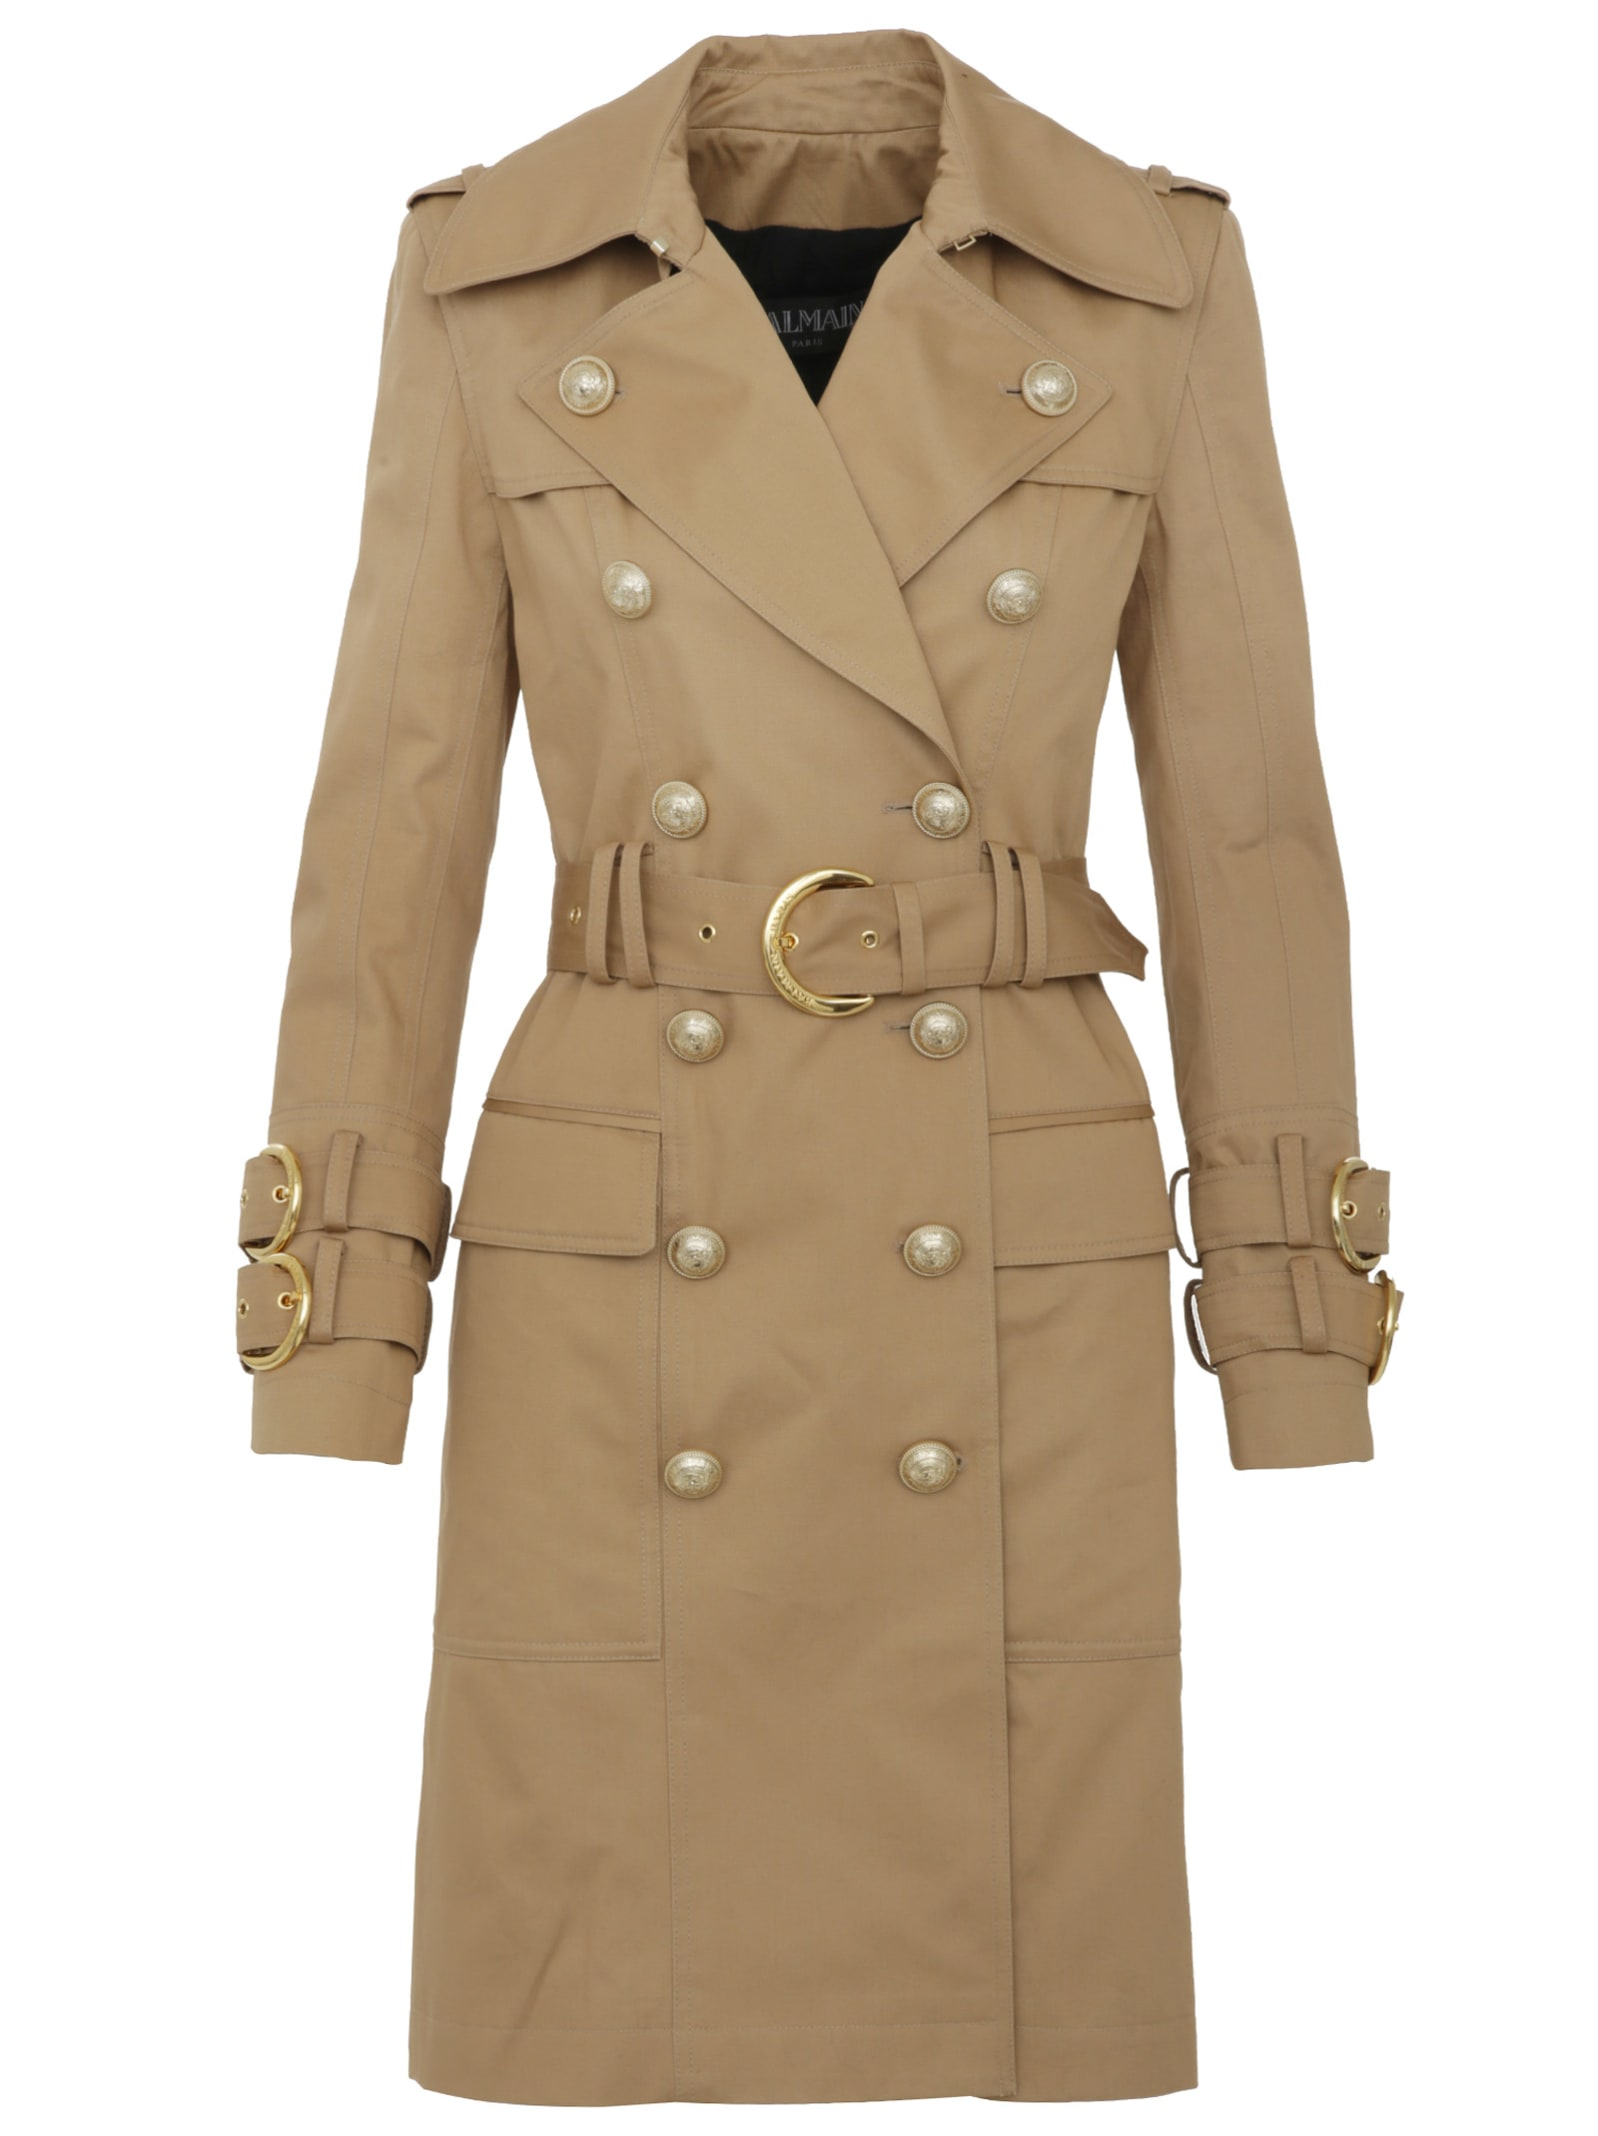 Balmain Paris Trench